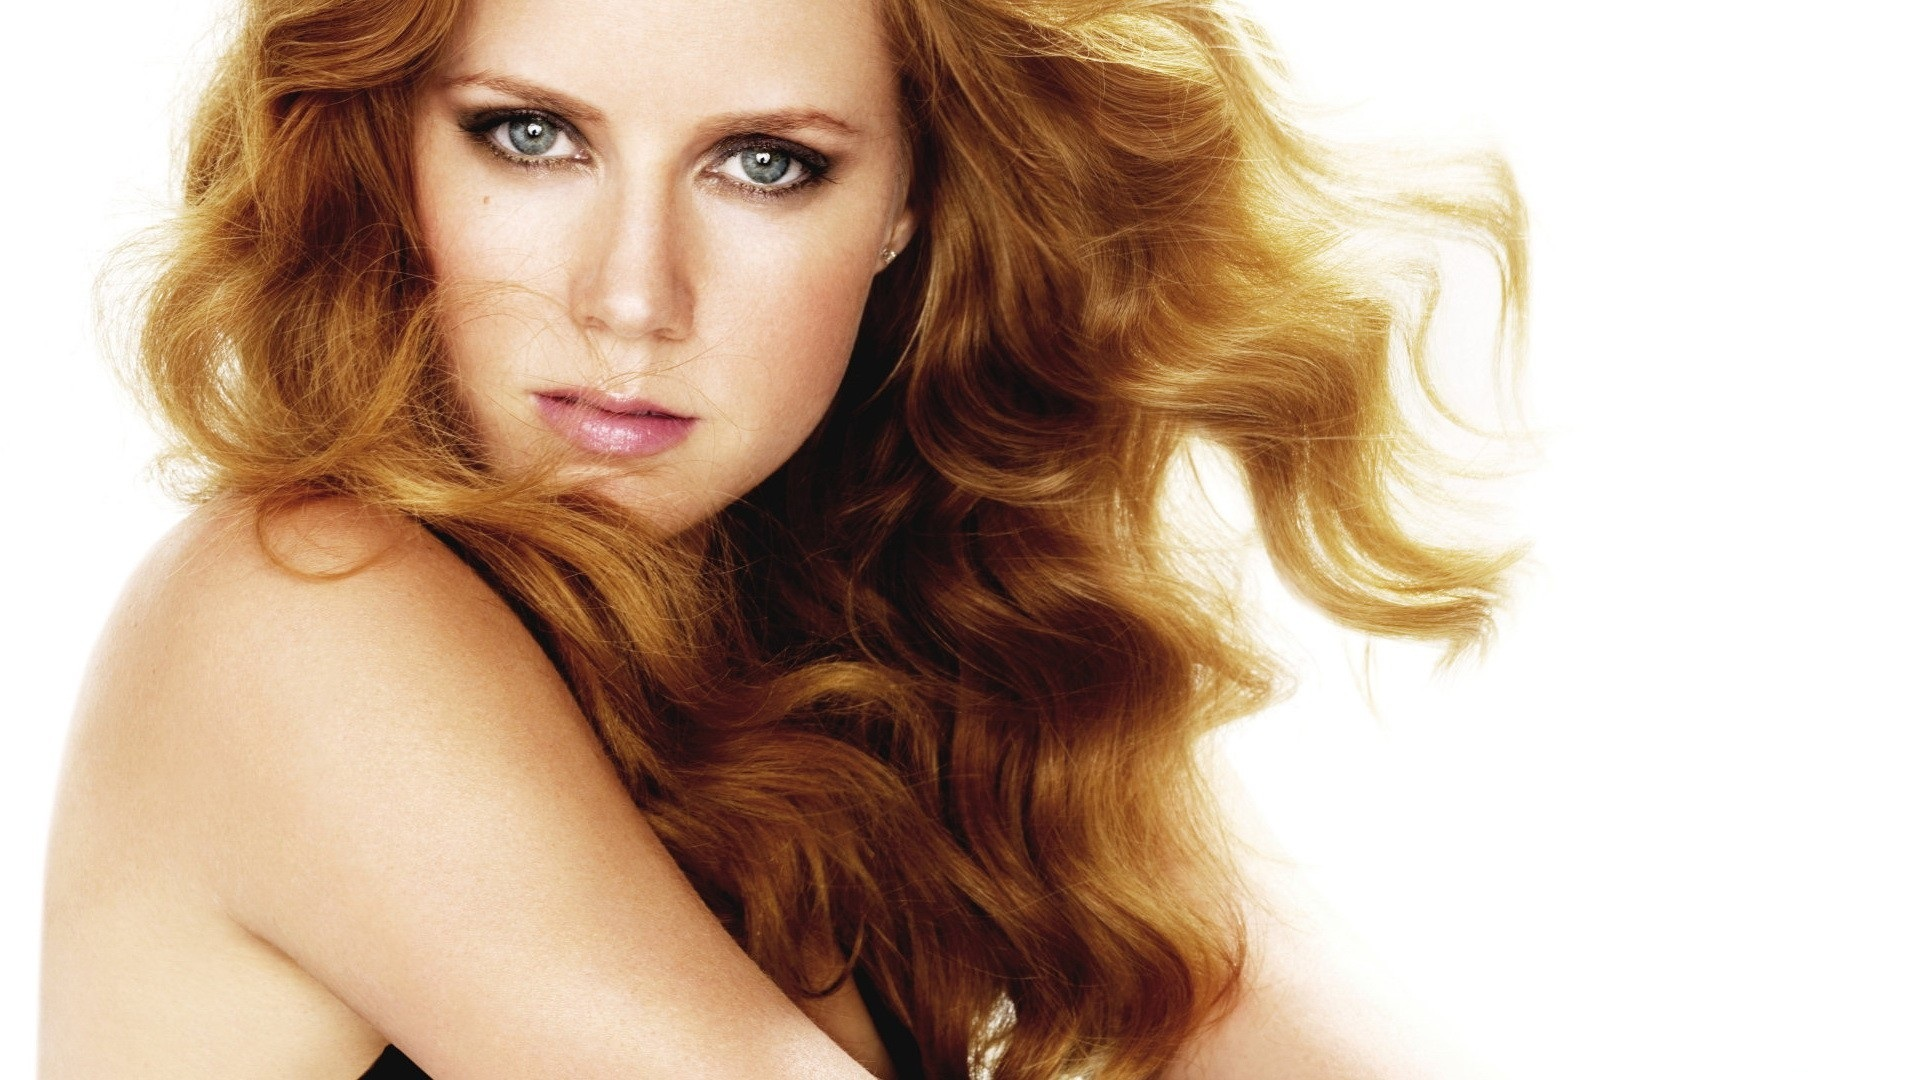 19 hd amy adams wallpapers